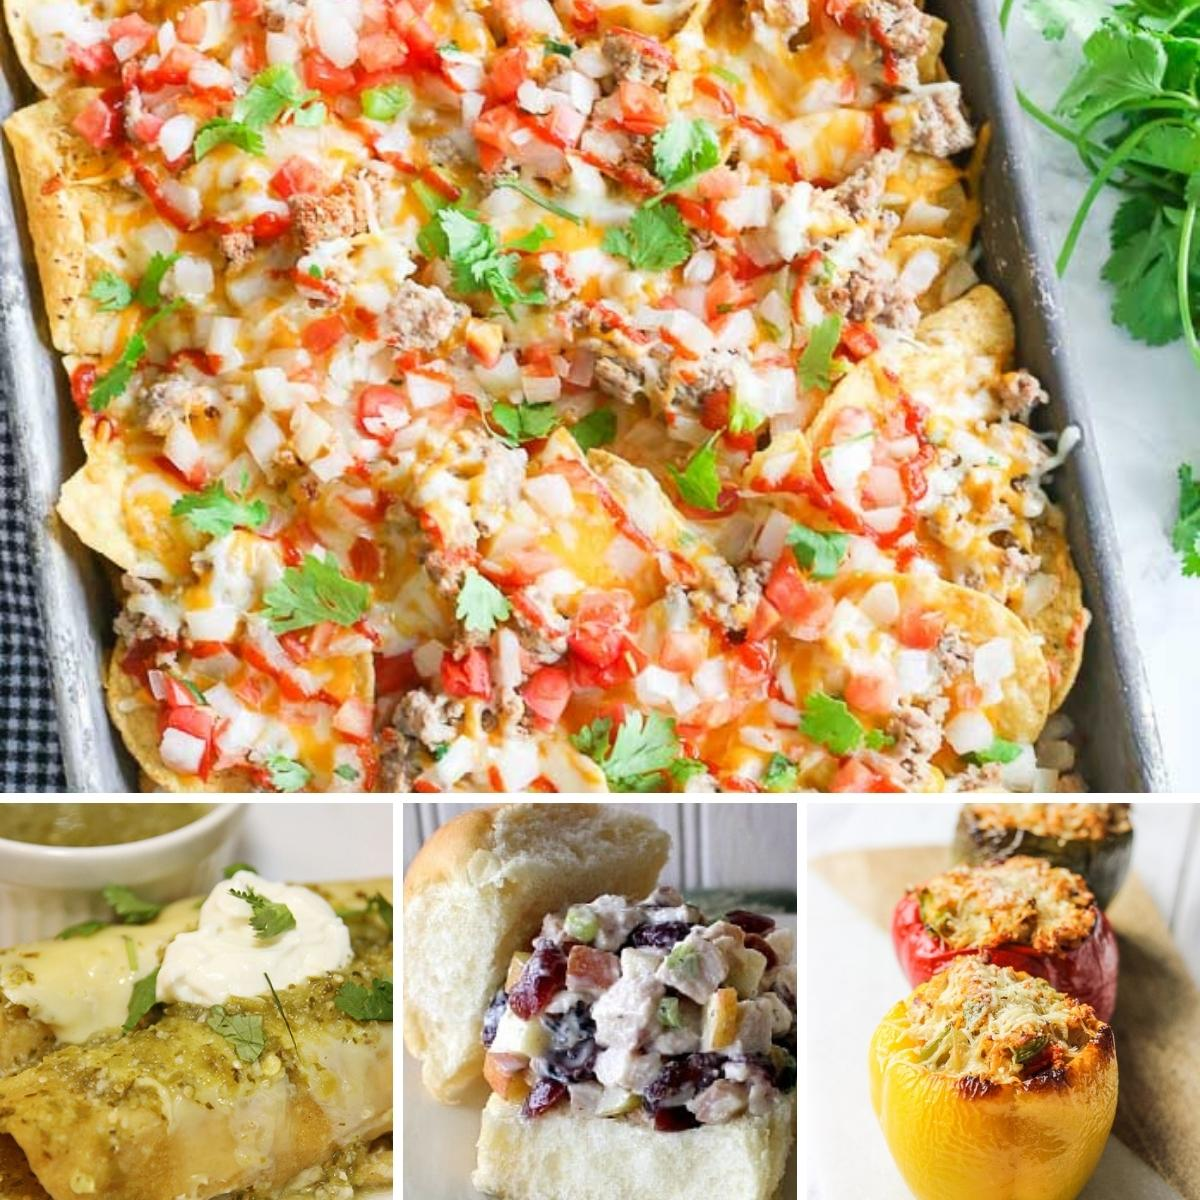 collage of recipes made with leftover turkey from thanksgiving or christmas